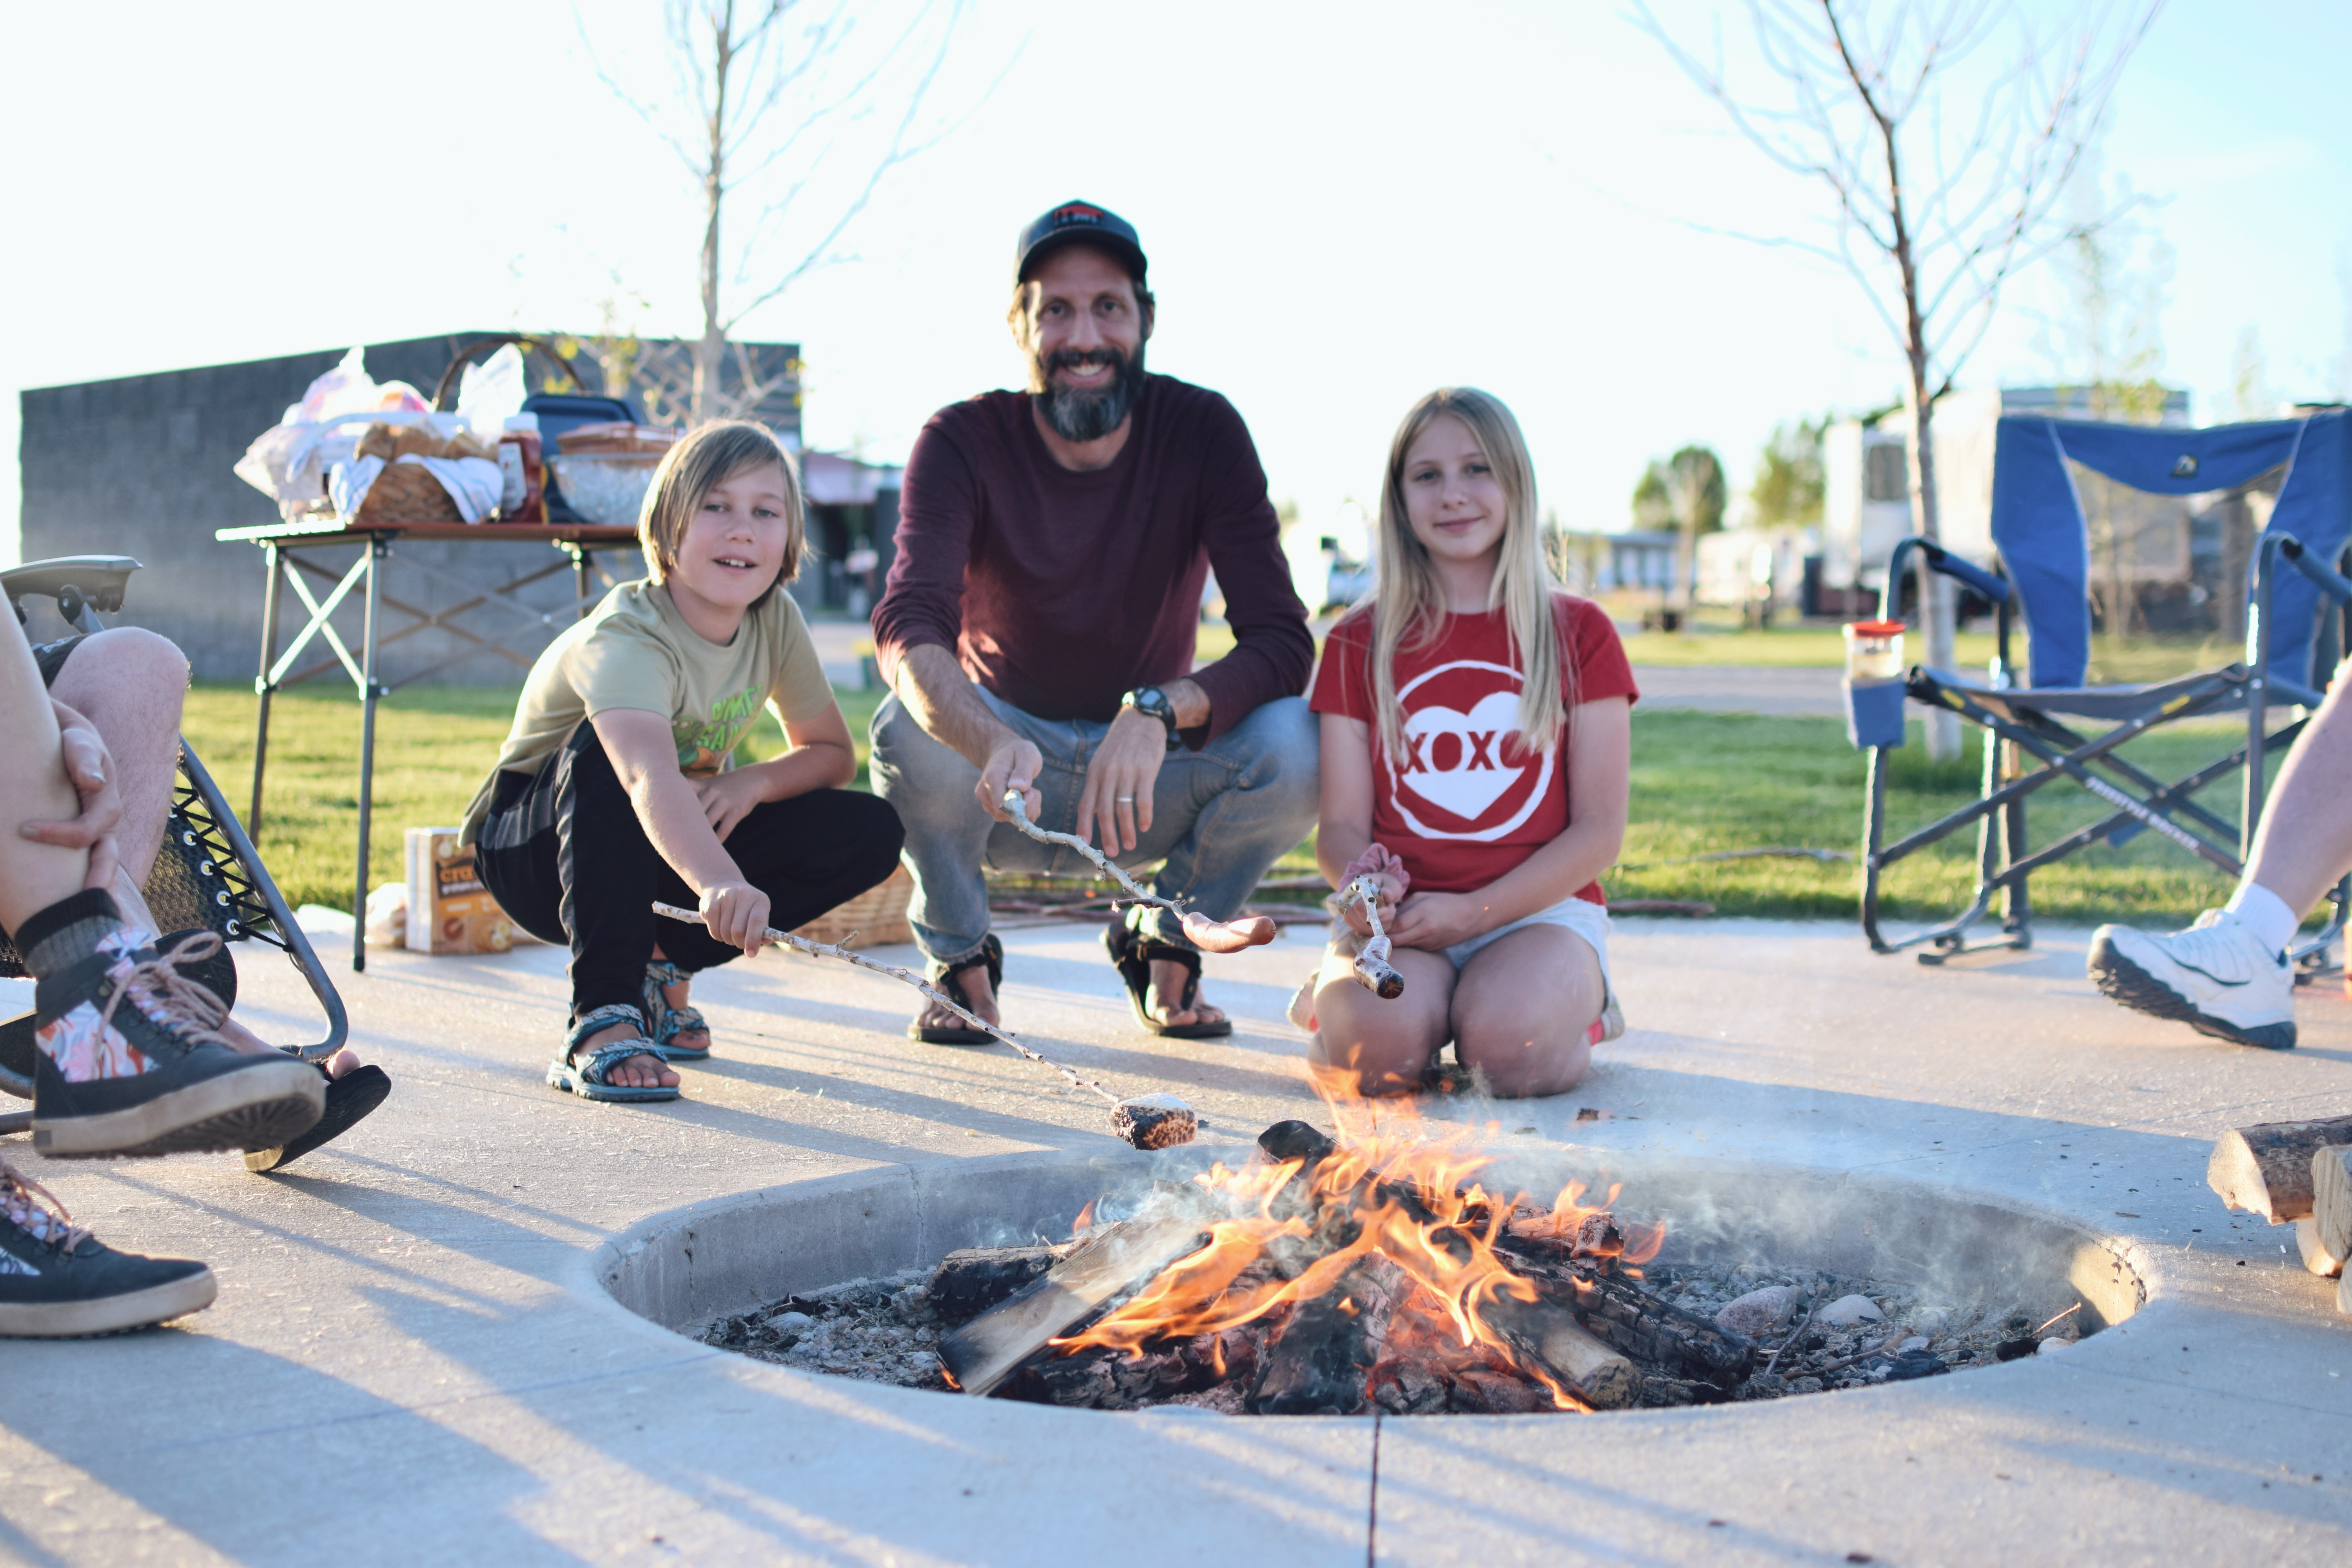 Family fun at the community campfire!